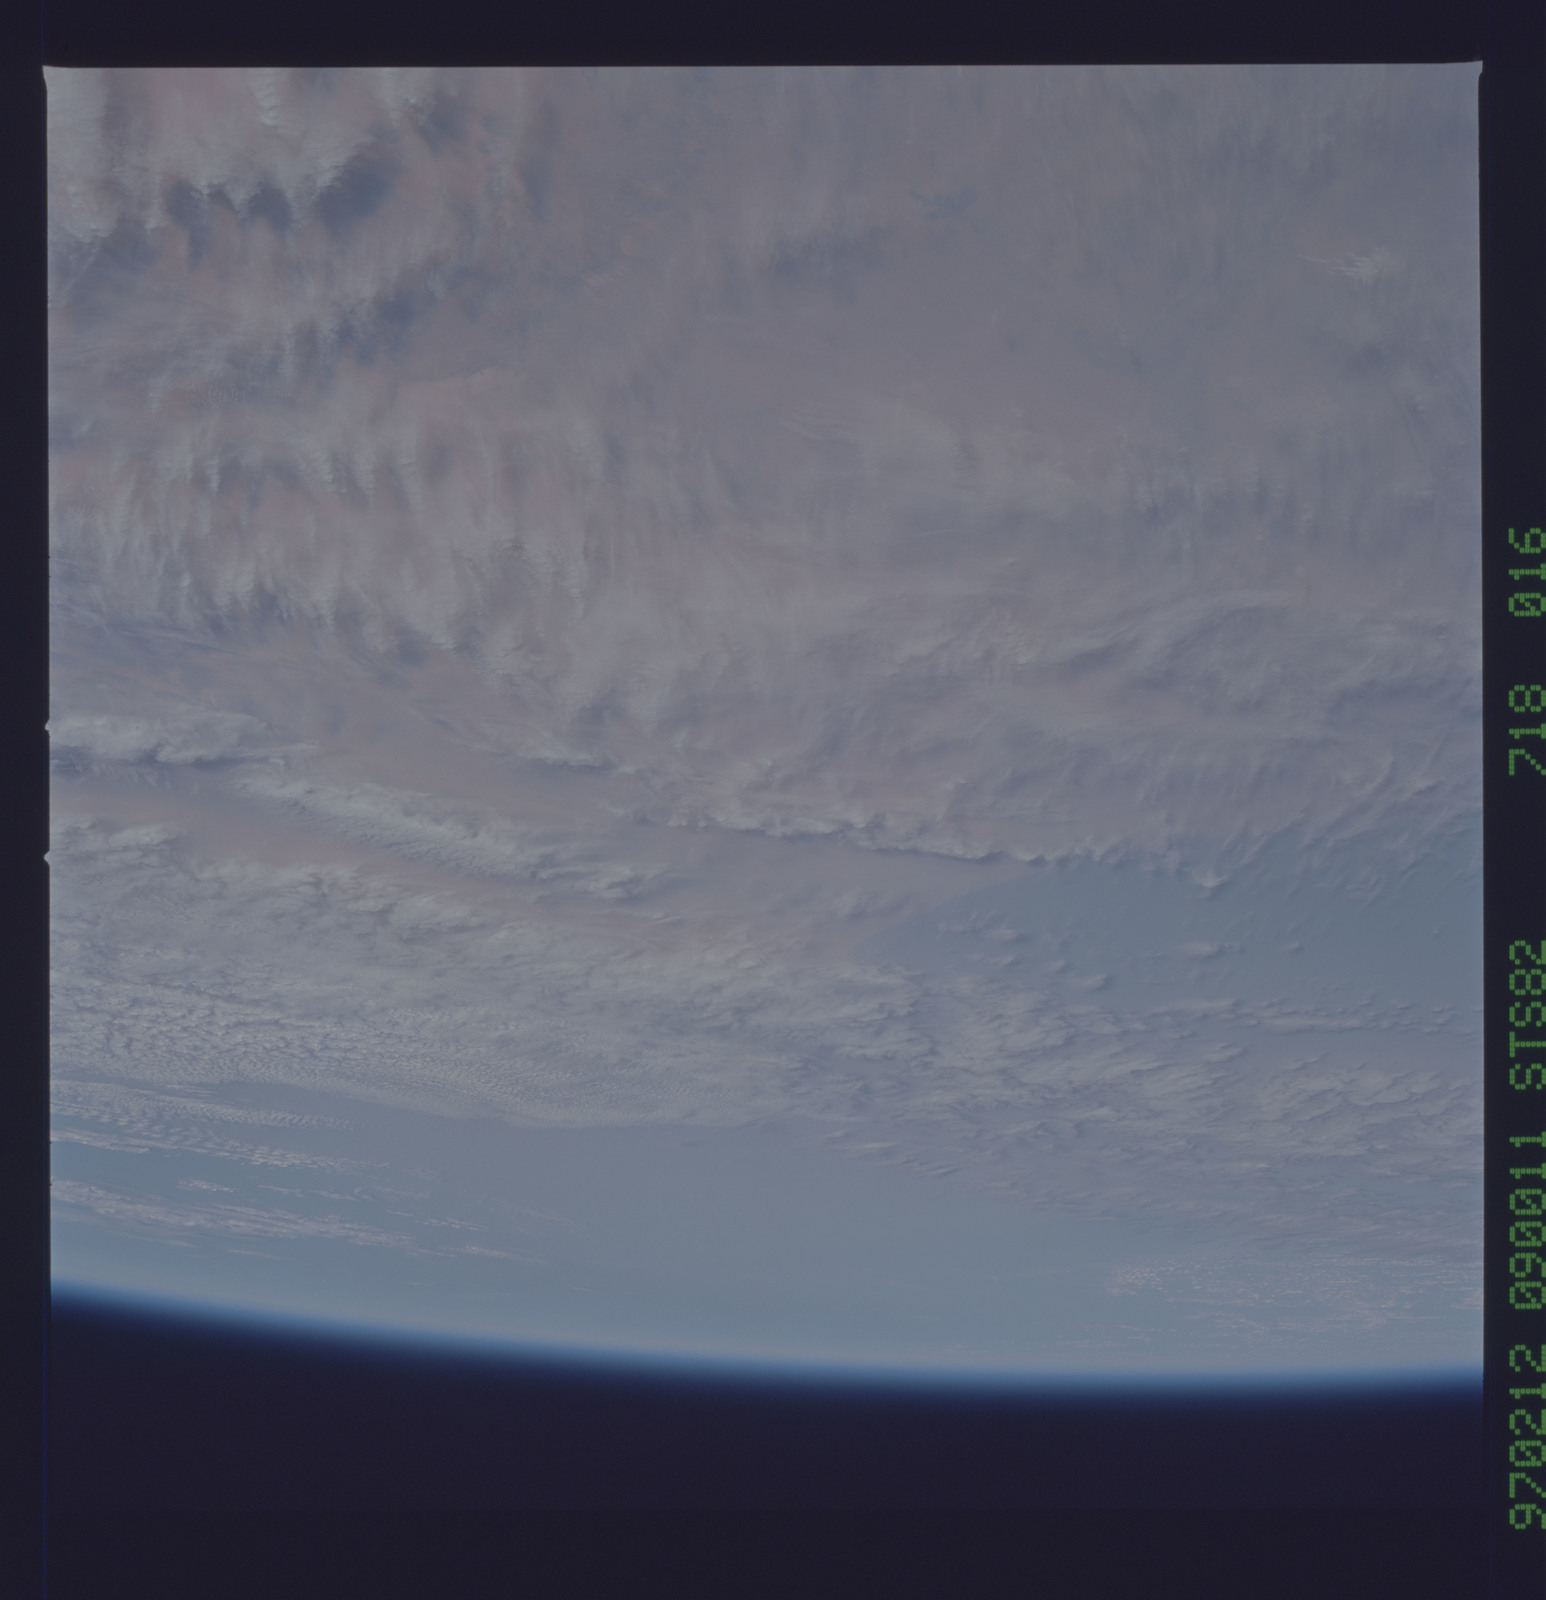 STS082-718-016 - STS-082 - Earth observations taken from shuttle orbiter Discovery during STS-82 mission